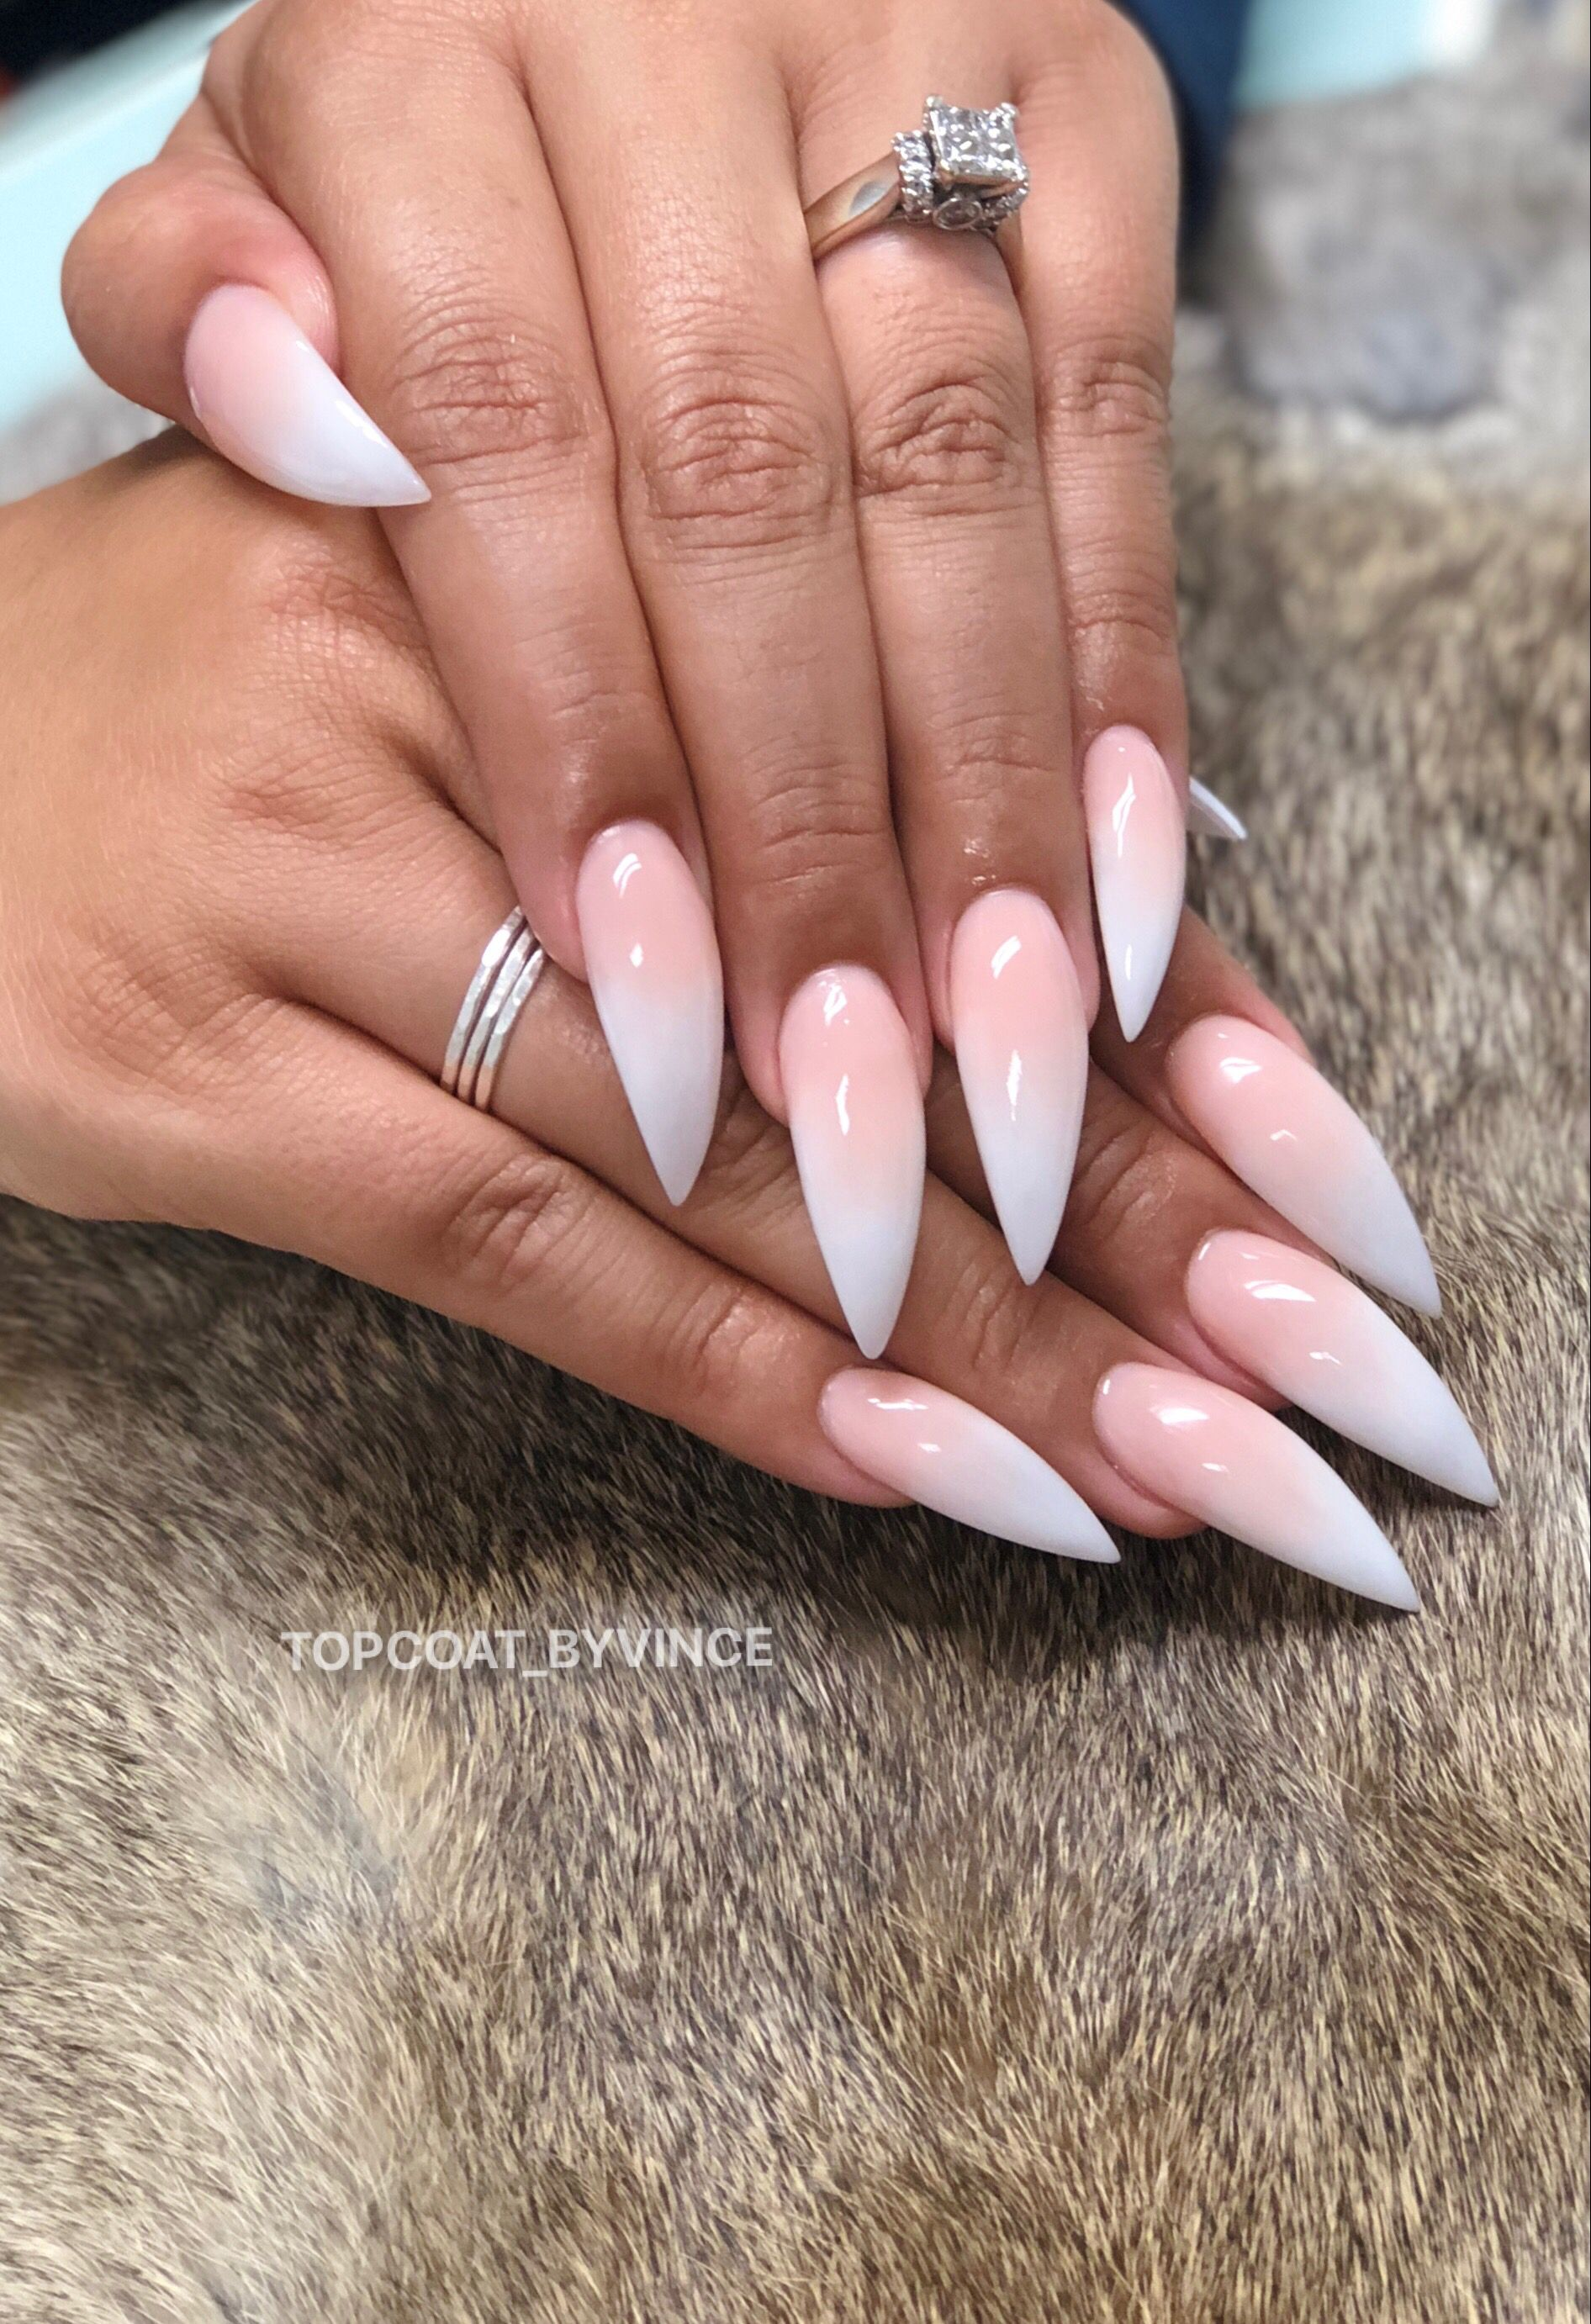 Ombré nails with stiletto shape